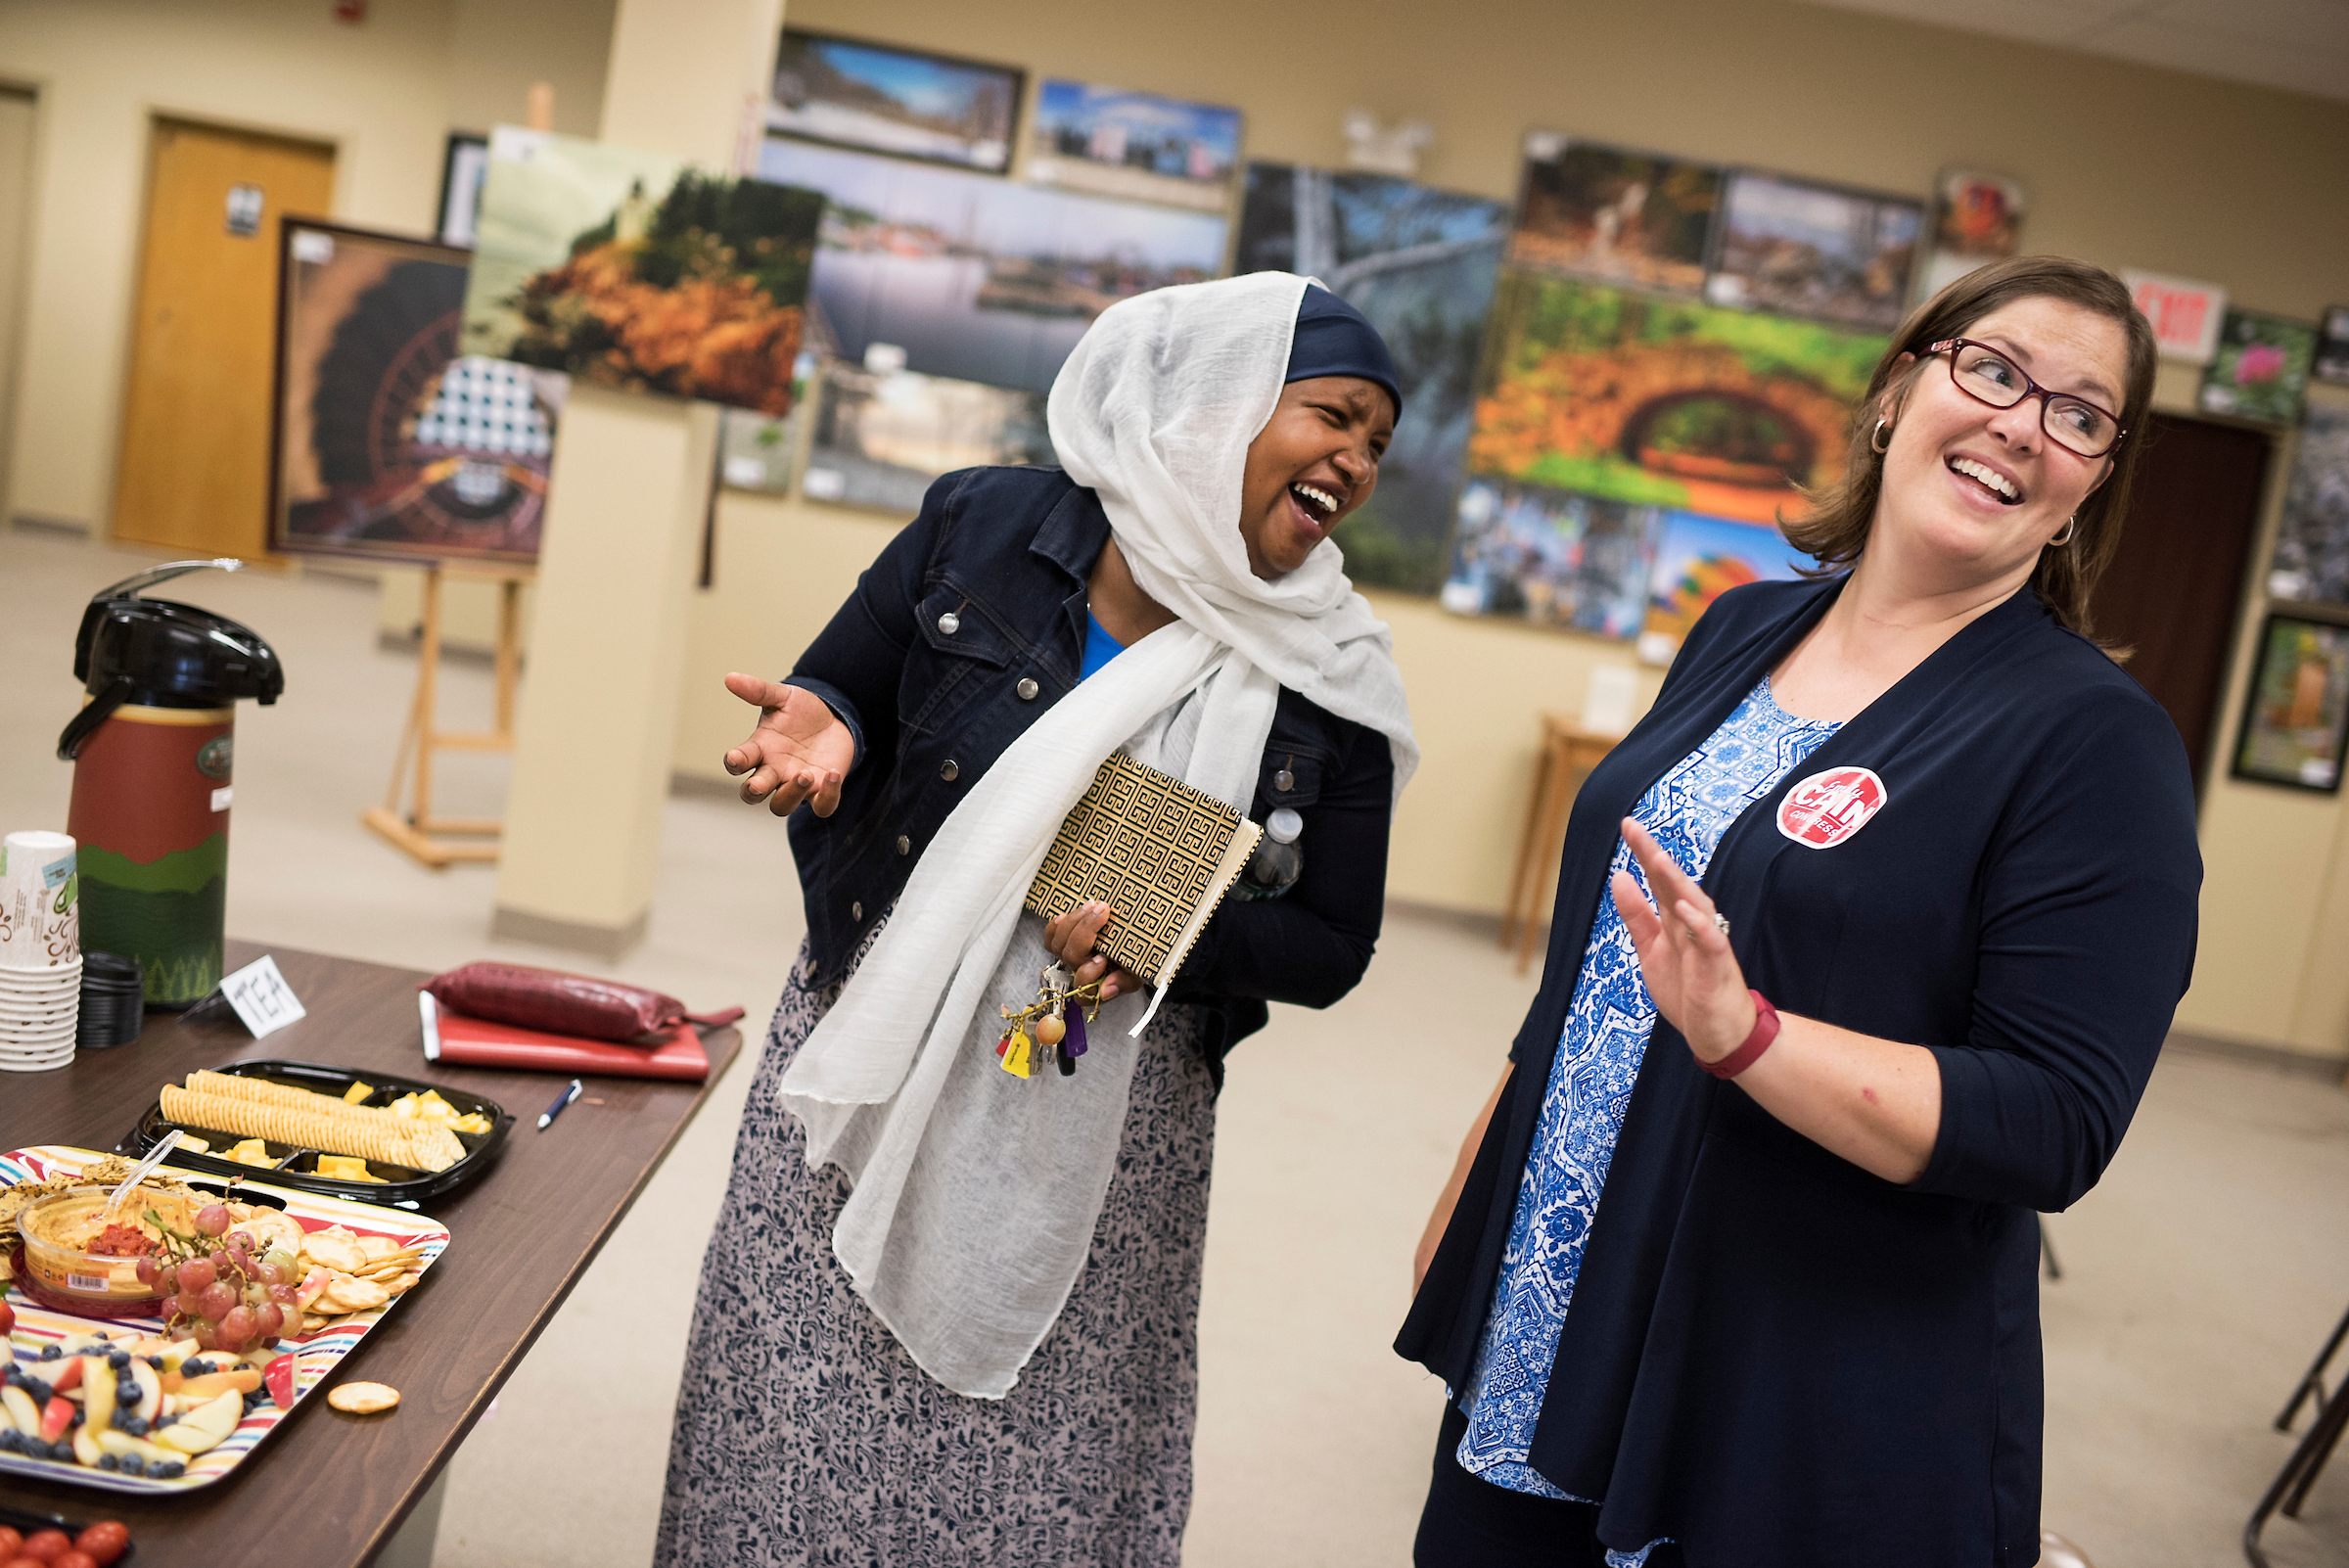 Emily Cain, right, Democratic candidate for Maine's 2nd Congressional District, talks with Fatuma Hussein from Somalia, in Lewiston, Maine, September 8, 2016. (Tom Williams/CQ Roll Call)